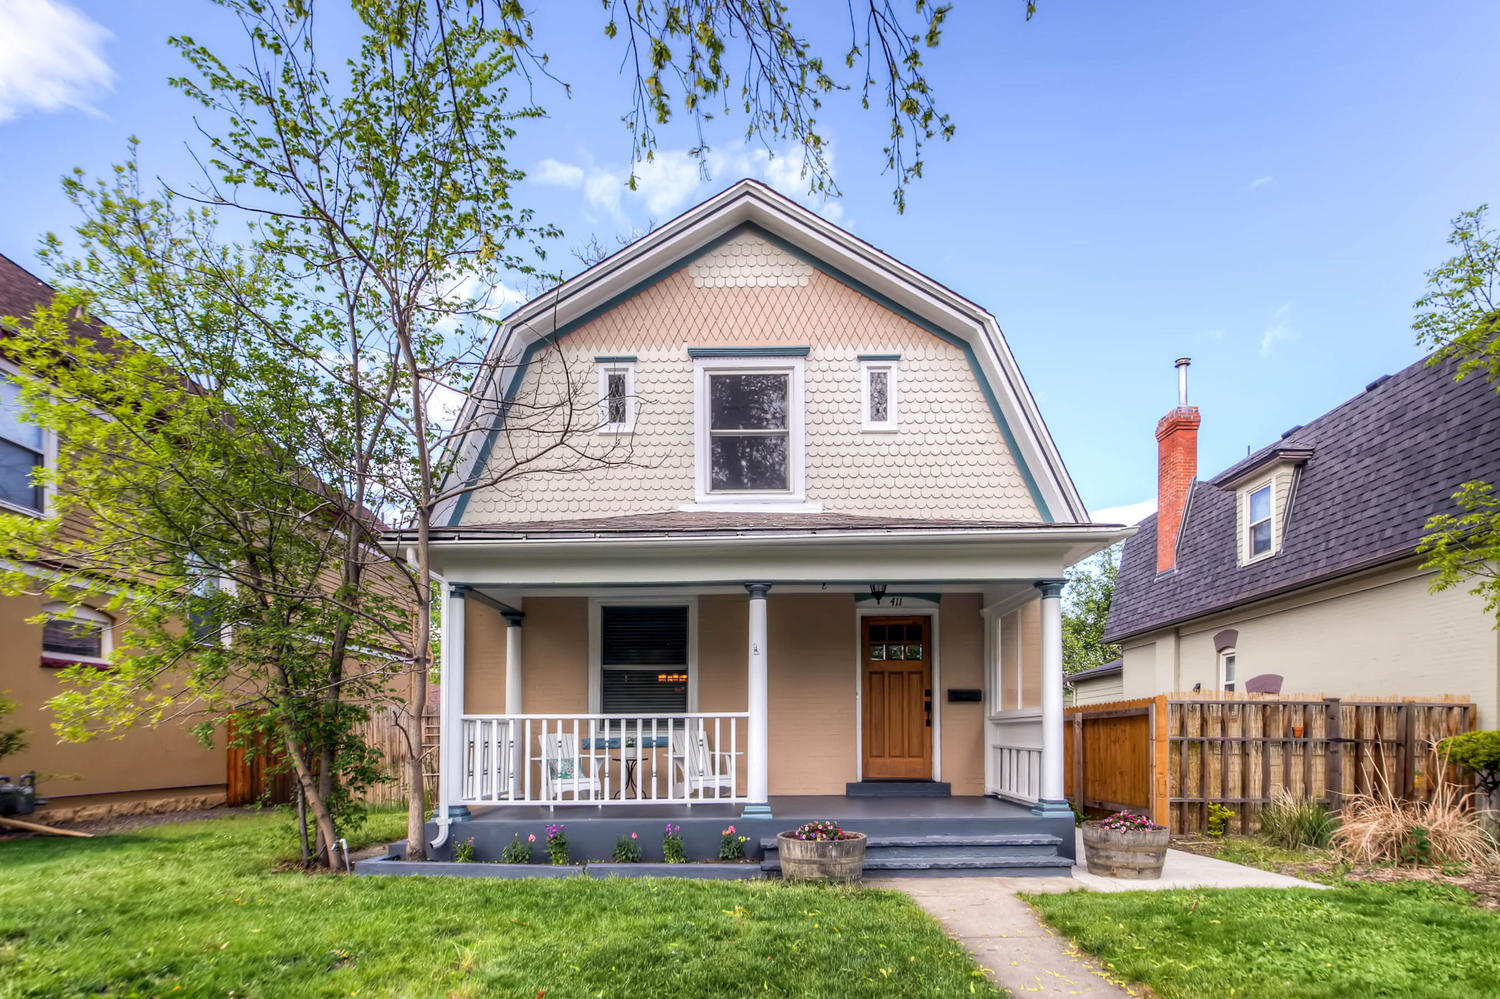 This Denver home listed by David Schlichter went under contract in one day for cash above the asking price and closed this month.